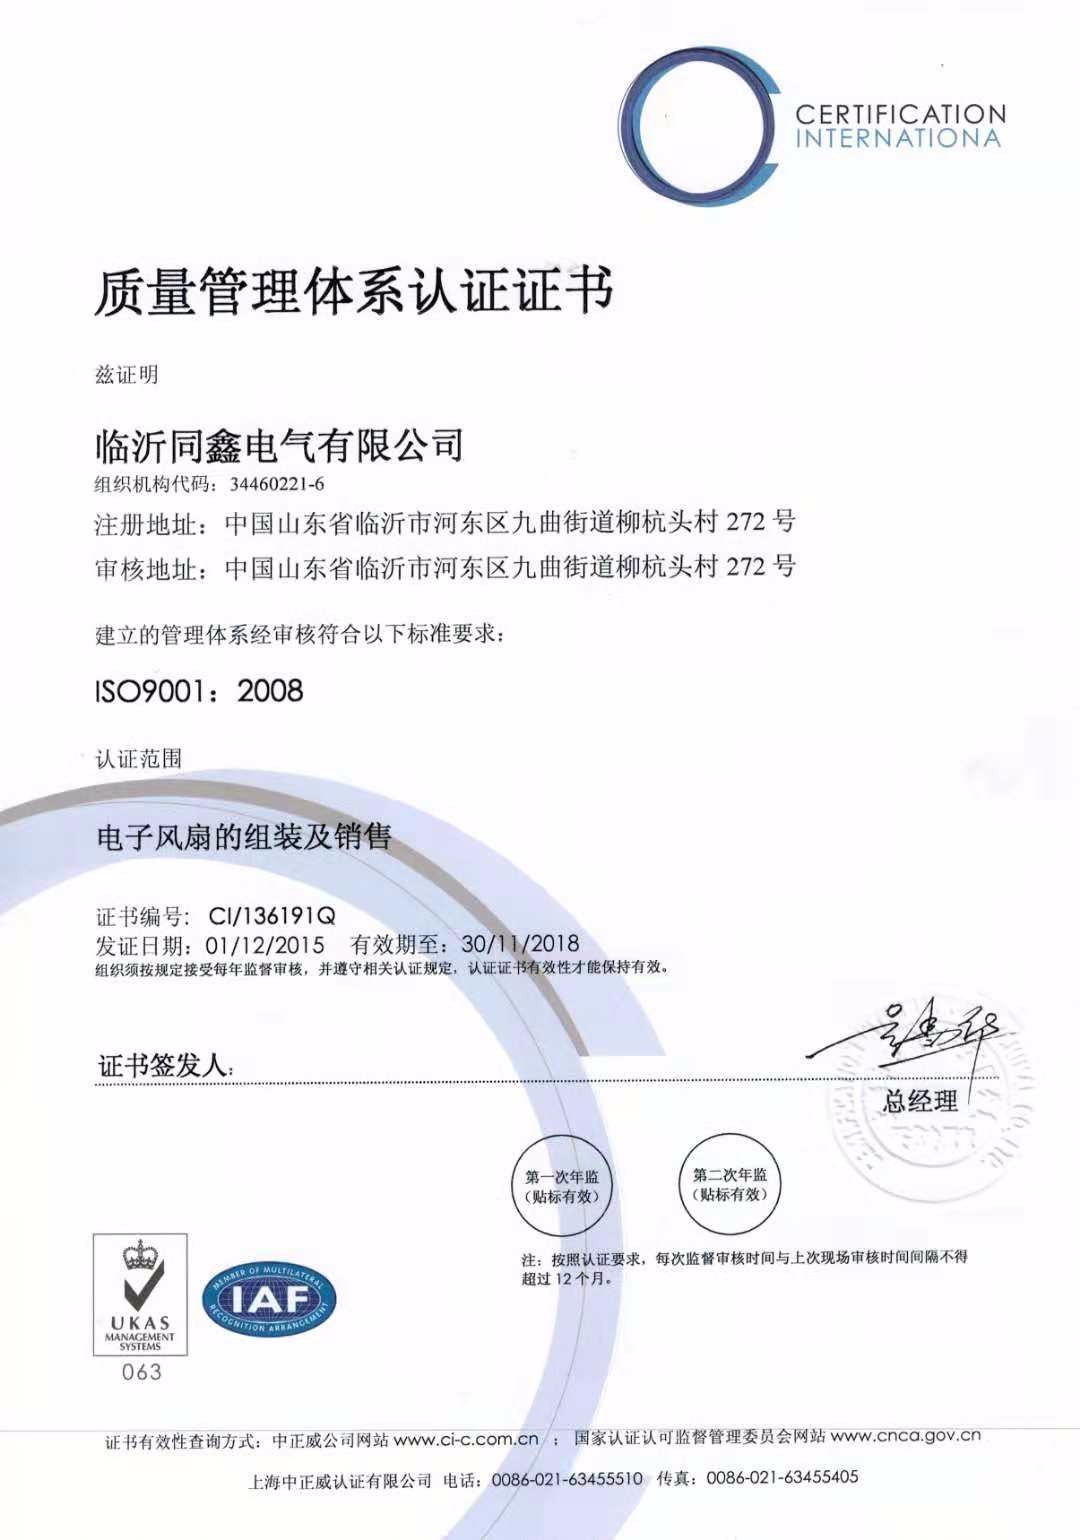 Third-party certification